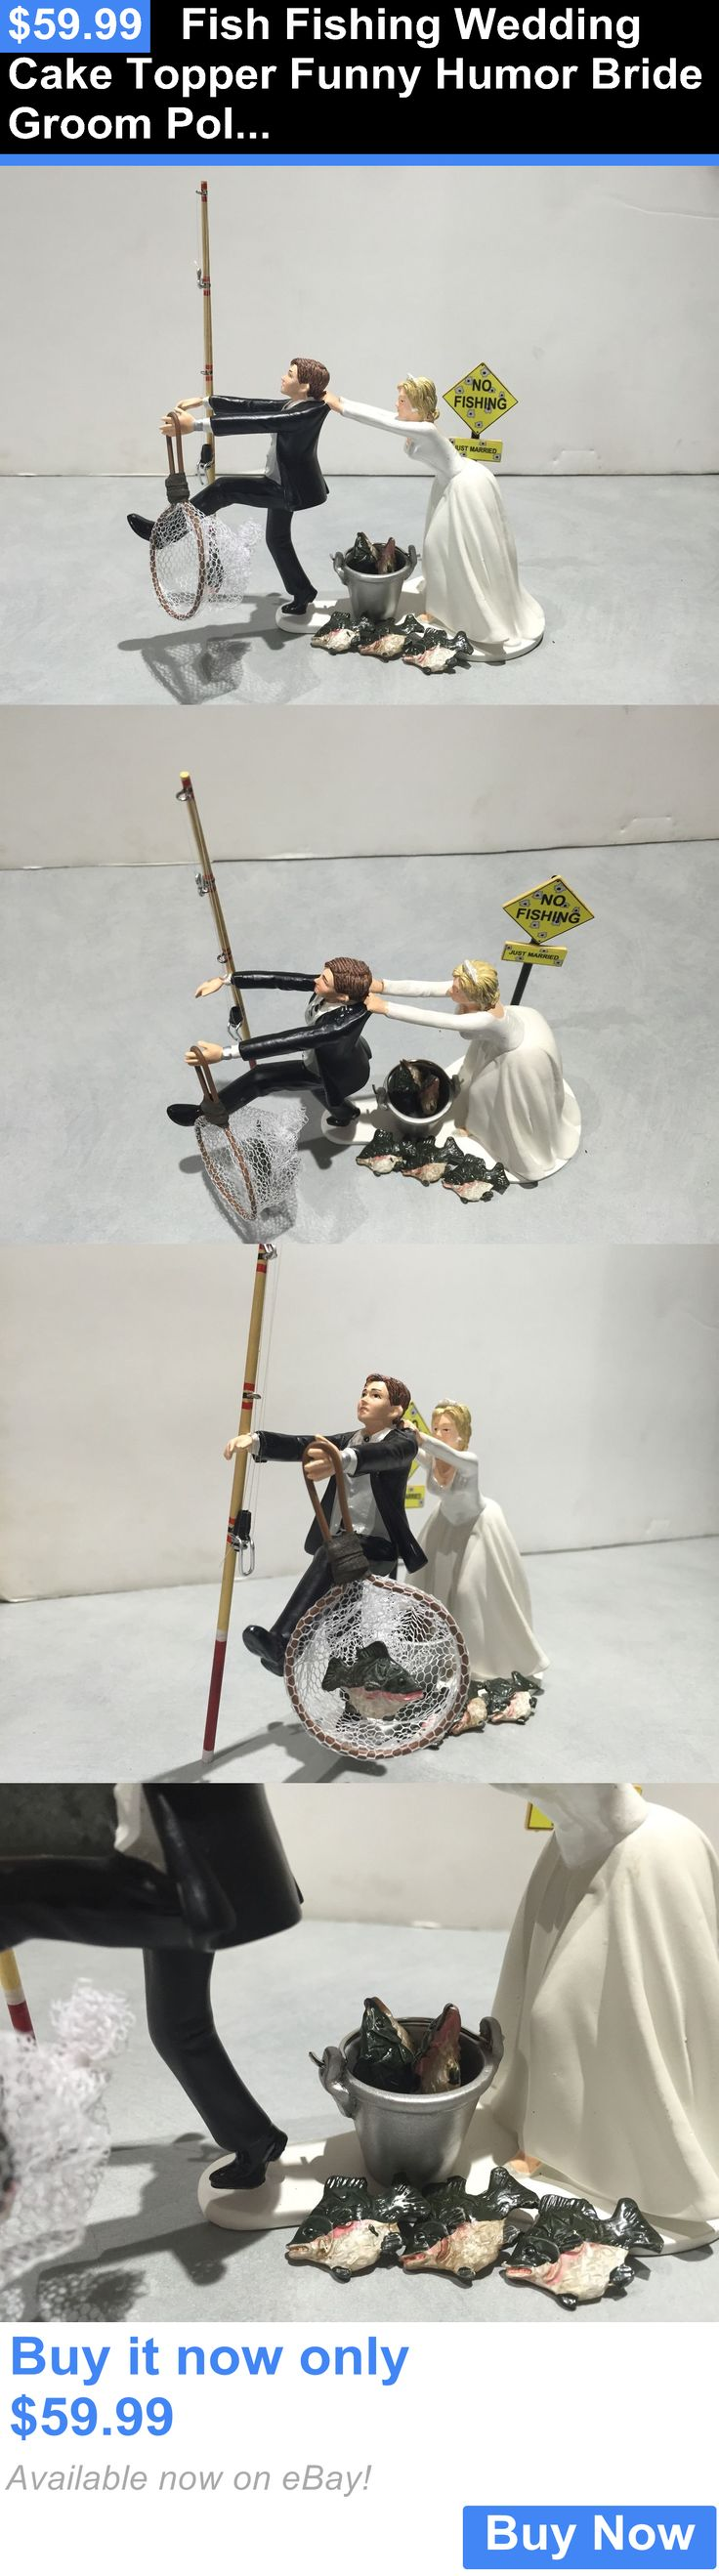 Wedding Cakes Toppers: Fish Fishing Wedding Cake Topper Funny Humor Bride Groom Pole Pail Net Sign BUY IT NOW ONLY: $59.99